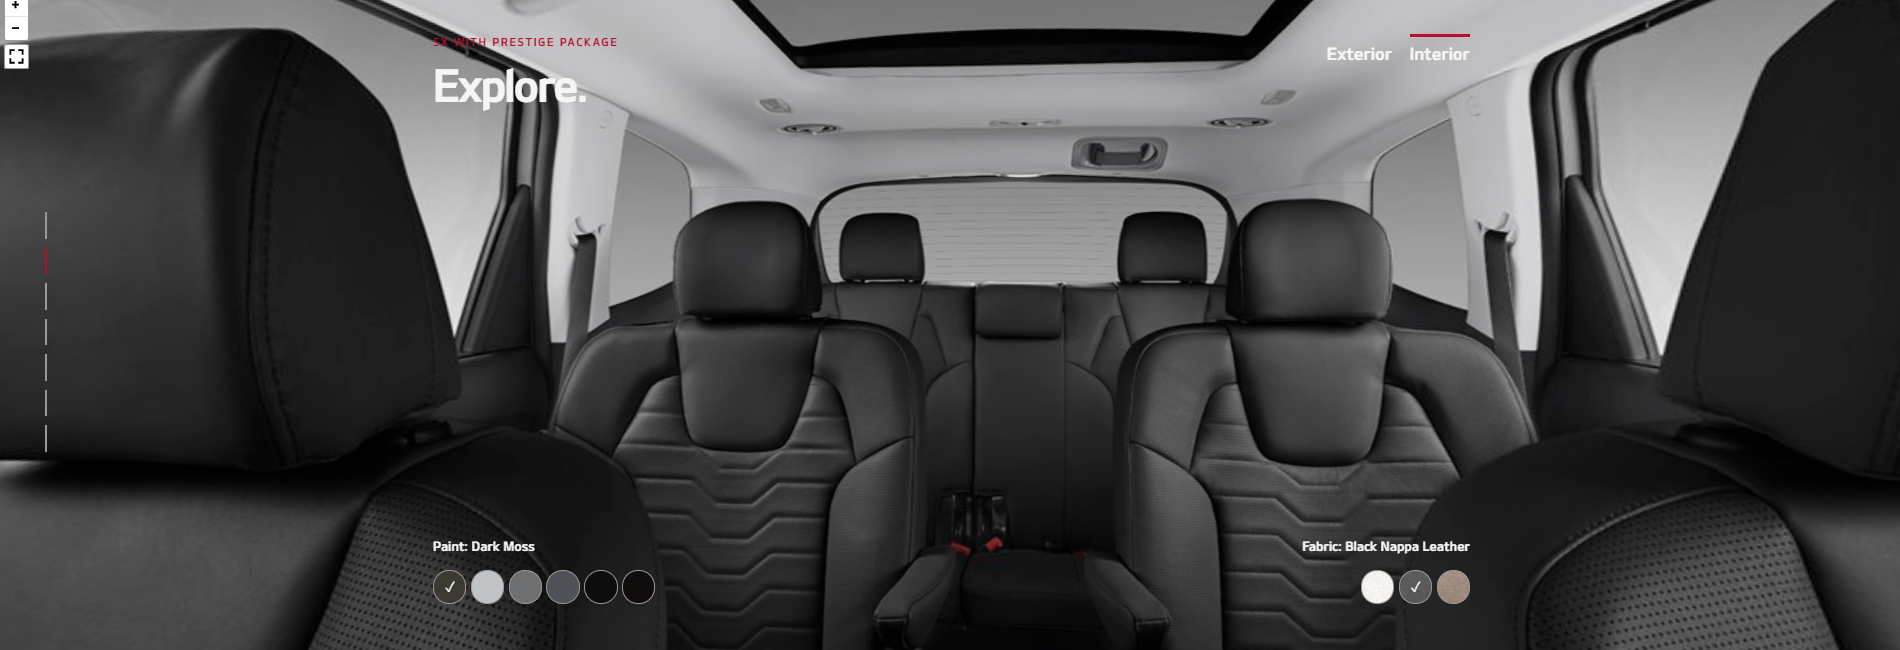 2020 Kia Telluride Black Nappa Leather